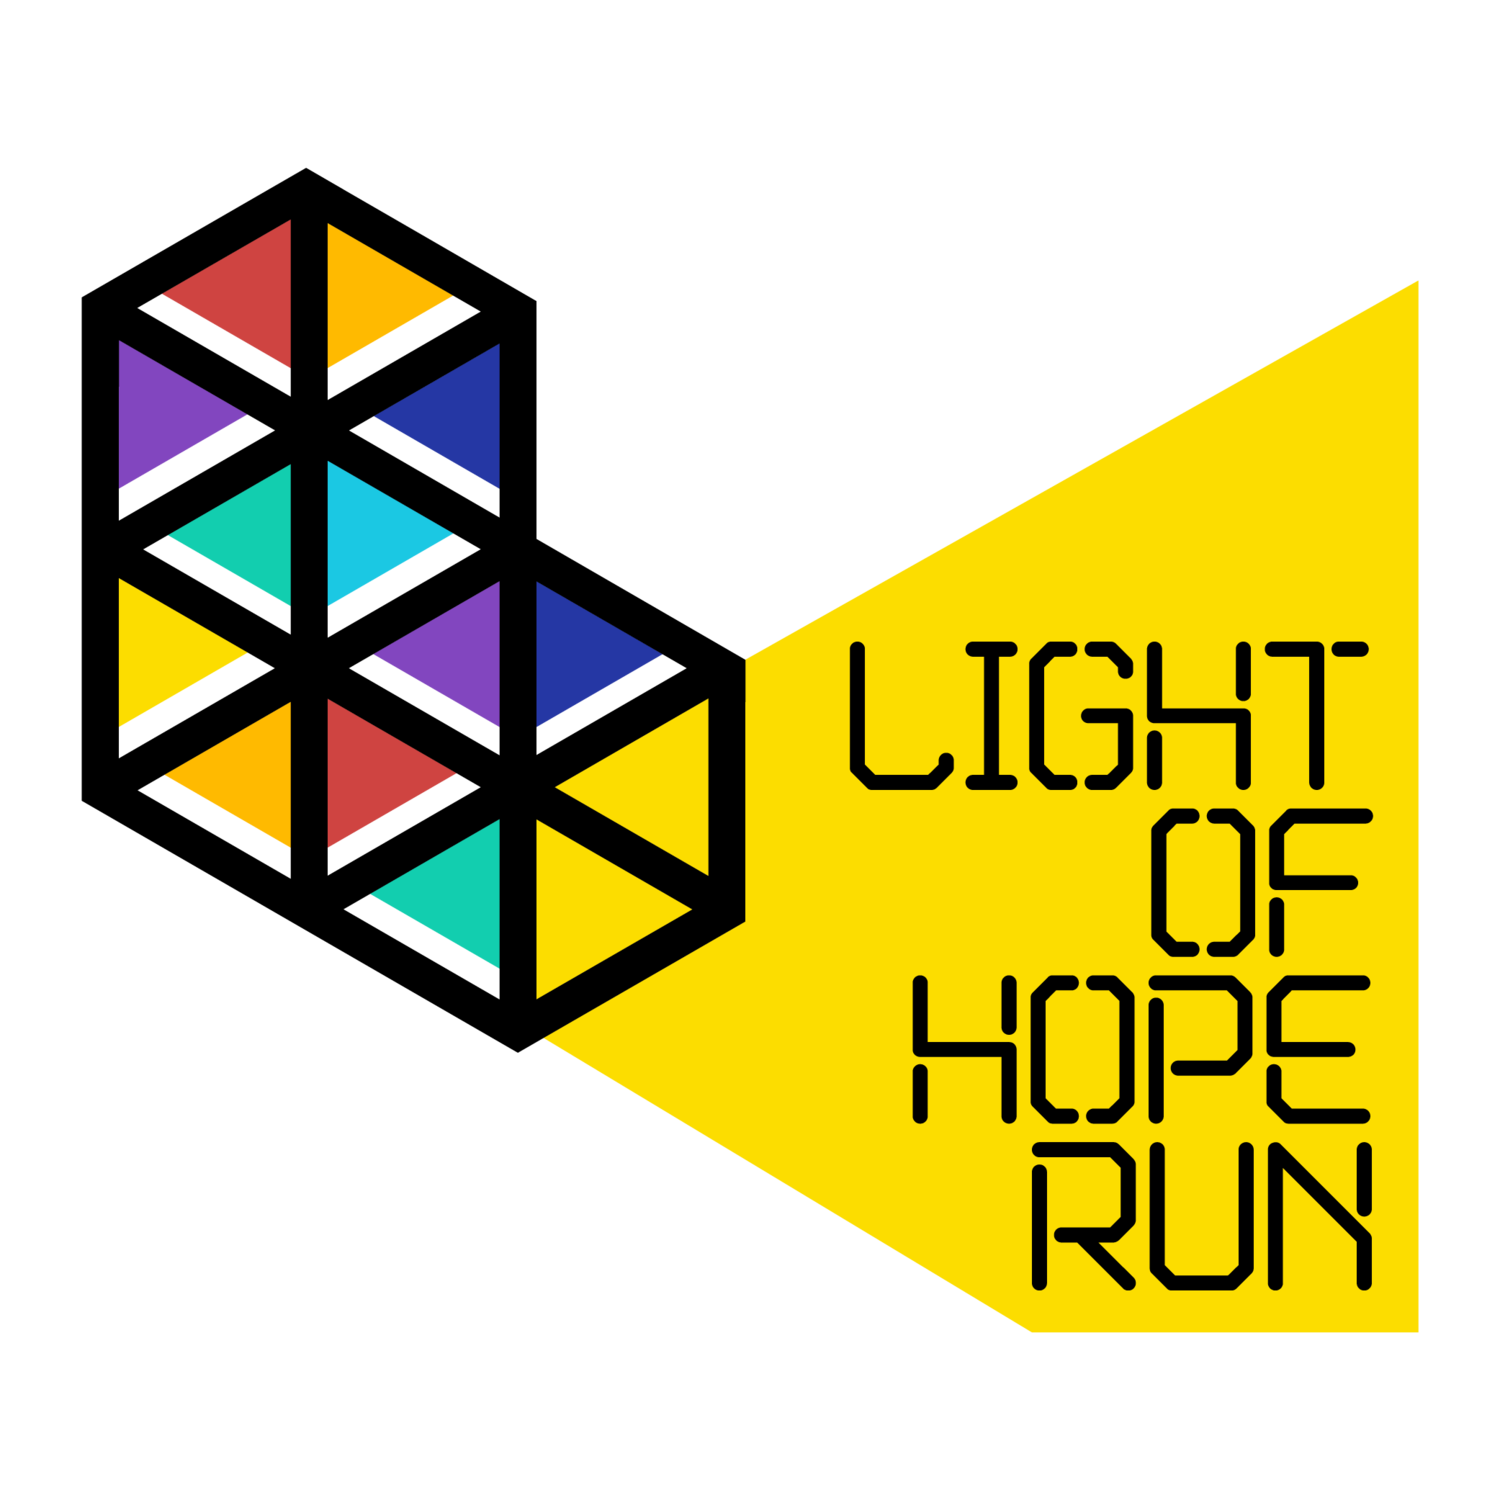 Light of Hope Run